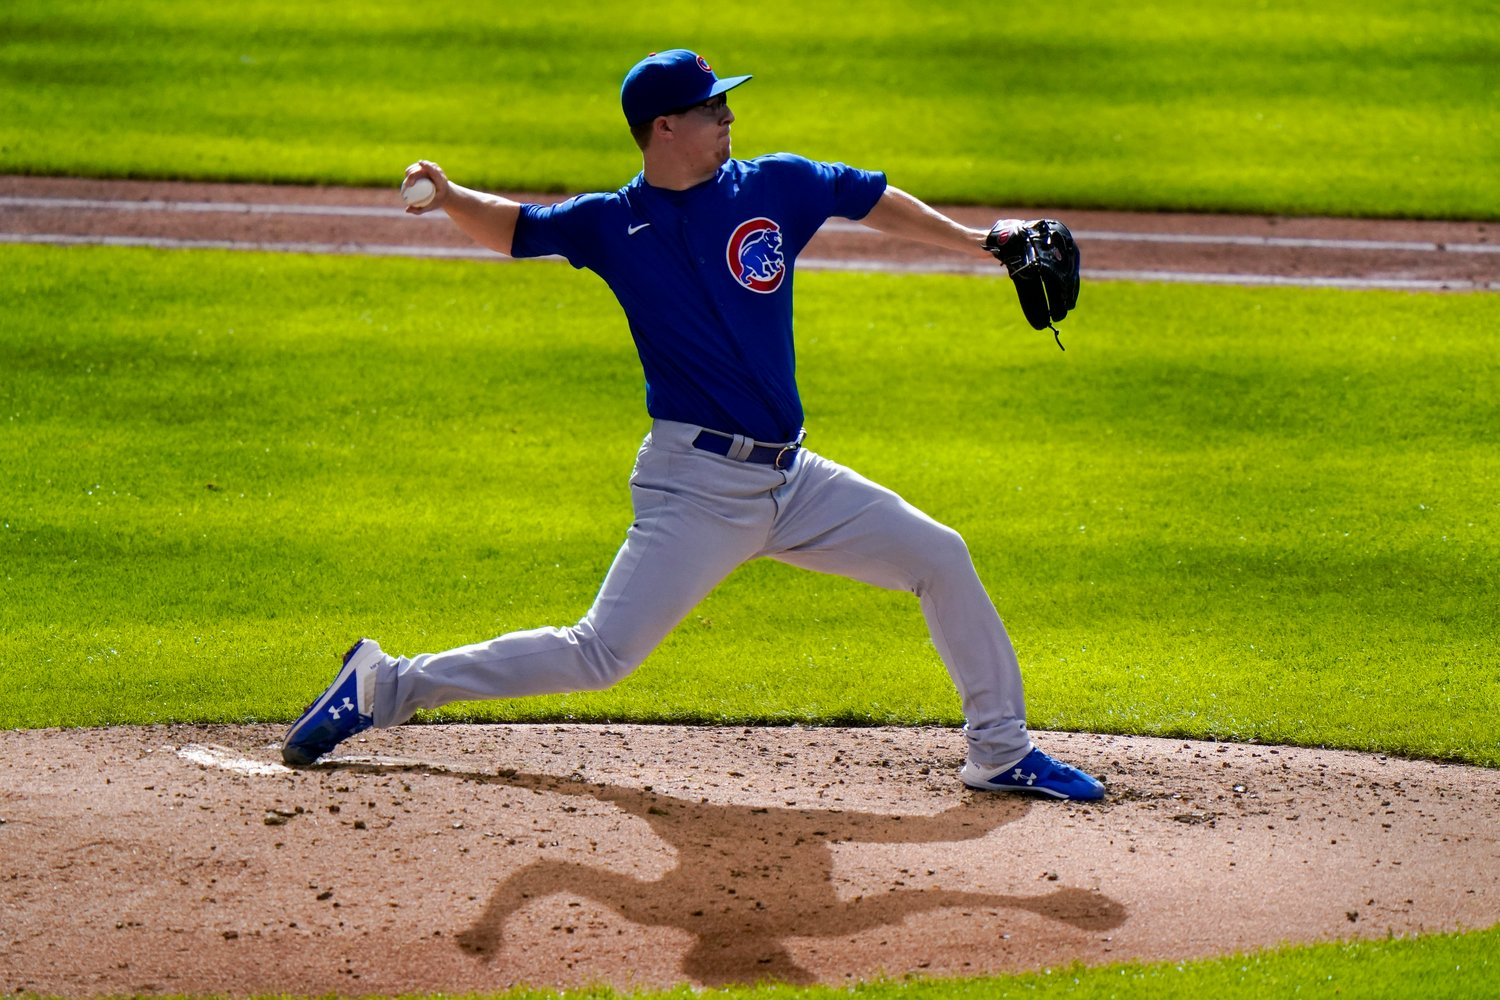 Chicago Cubs starting pitcher Alec Mills throws during the eighth inning of a baseball game against the Milwaukee Brewers Sunday, Sept. 13, 2020, in Milwaukee. (AP Photo/Morry Gash)